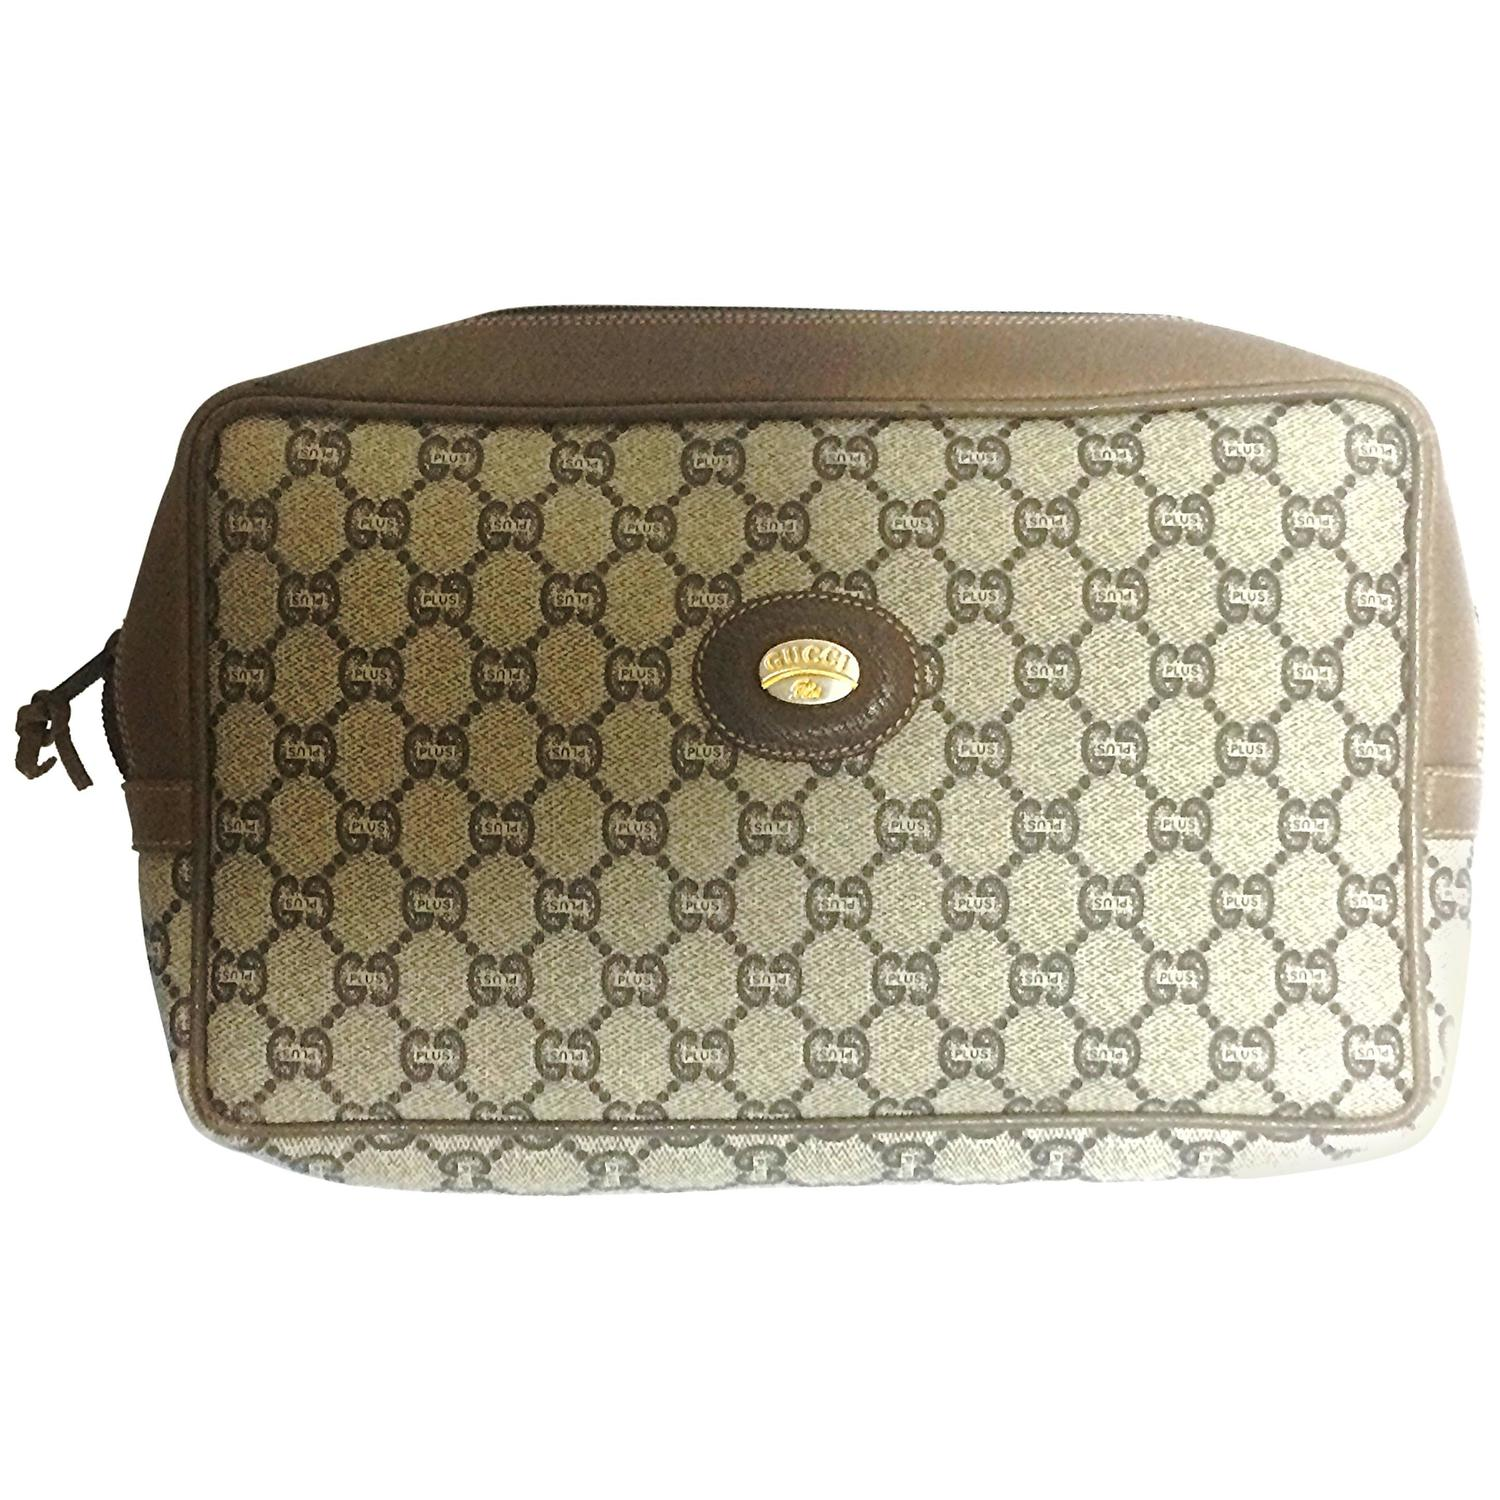 gucci key pouch. 80\u0027s vintage gucci plus beige monogram clutch bag, cosmetic, toiletry pouch. for sale at 1stdibs key pouch